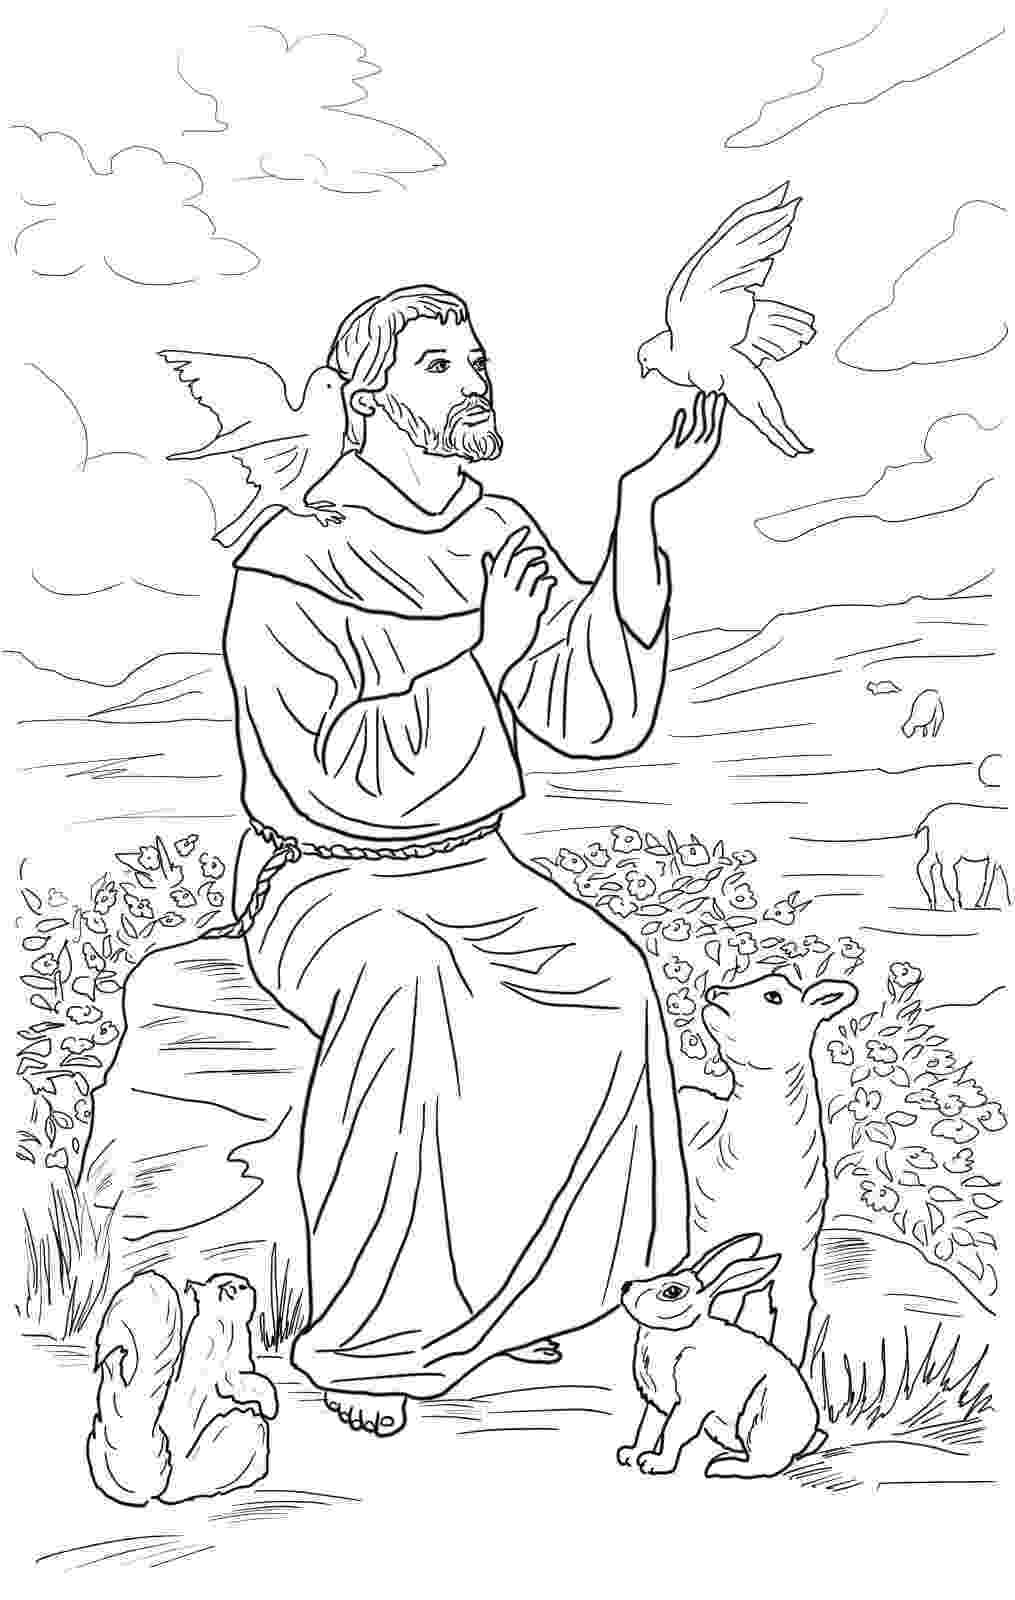 st francis coloring page saint francis of assisi coloring pages worksheet school francis st coloring page